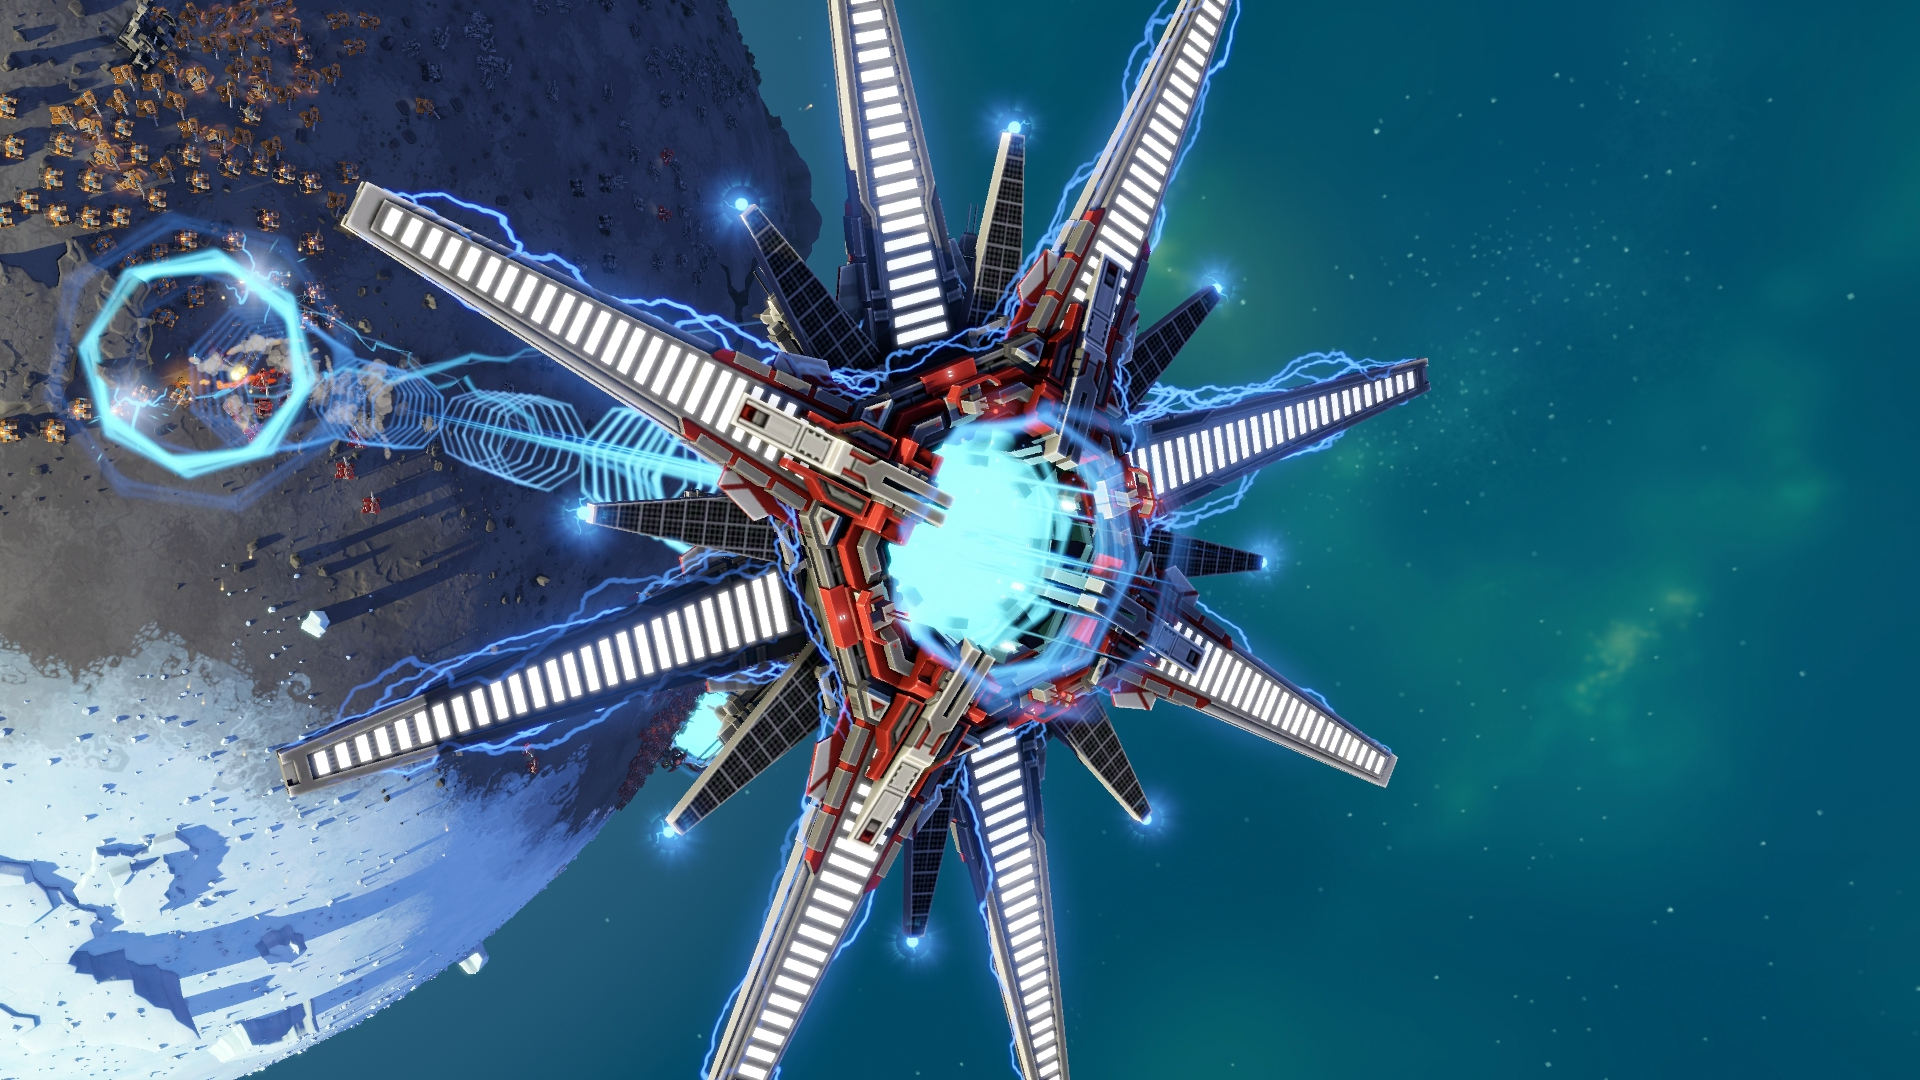 Planetary Annihilation: TITANS System Requirements - Can I Run It